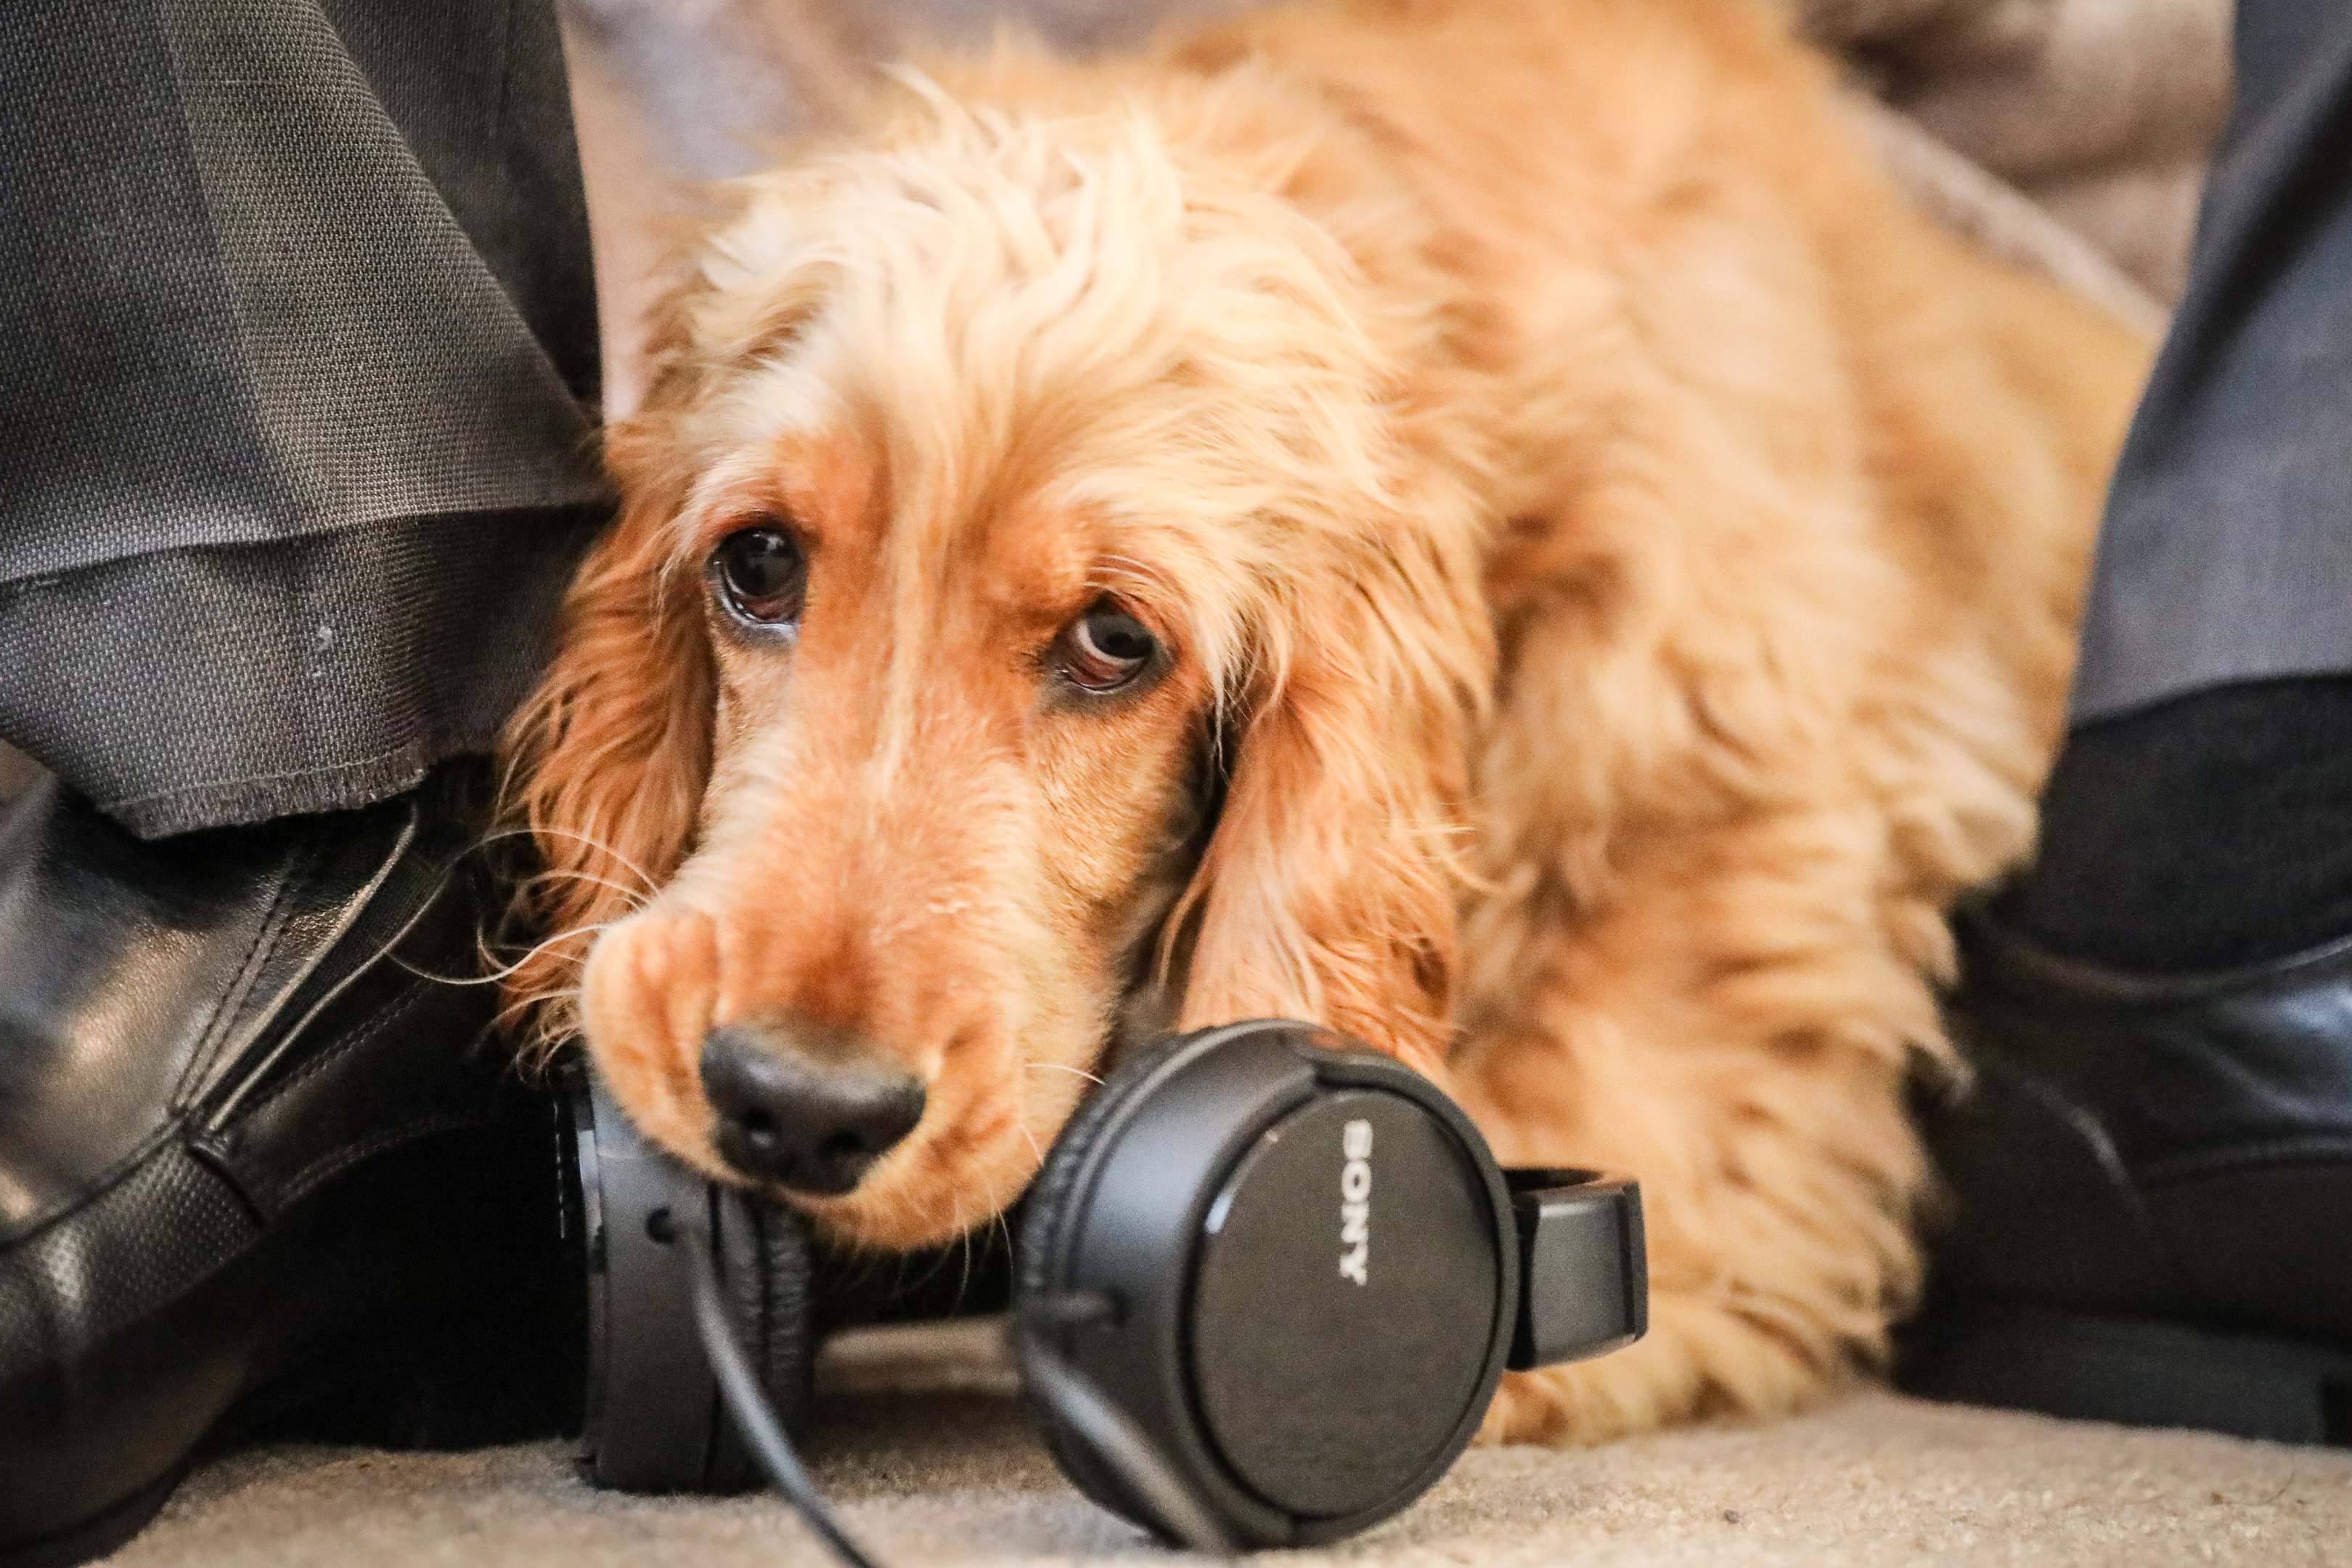 SSPCA have released theraputic music for dogs which will be available to stream over spotify, iTunes etc